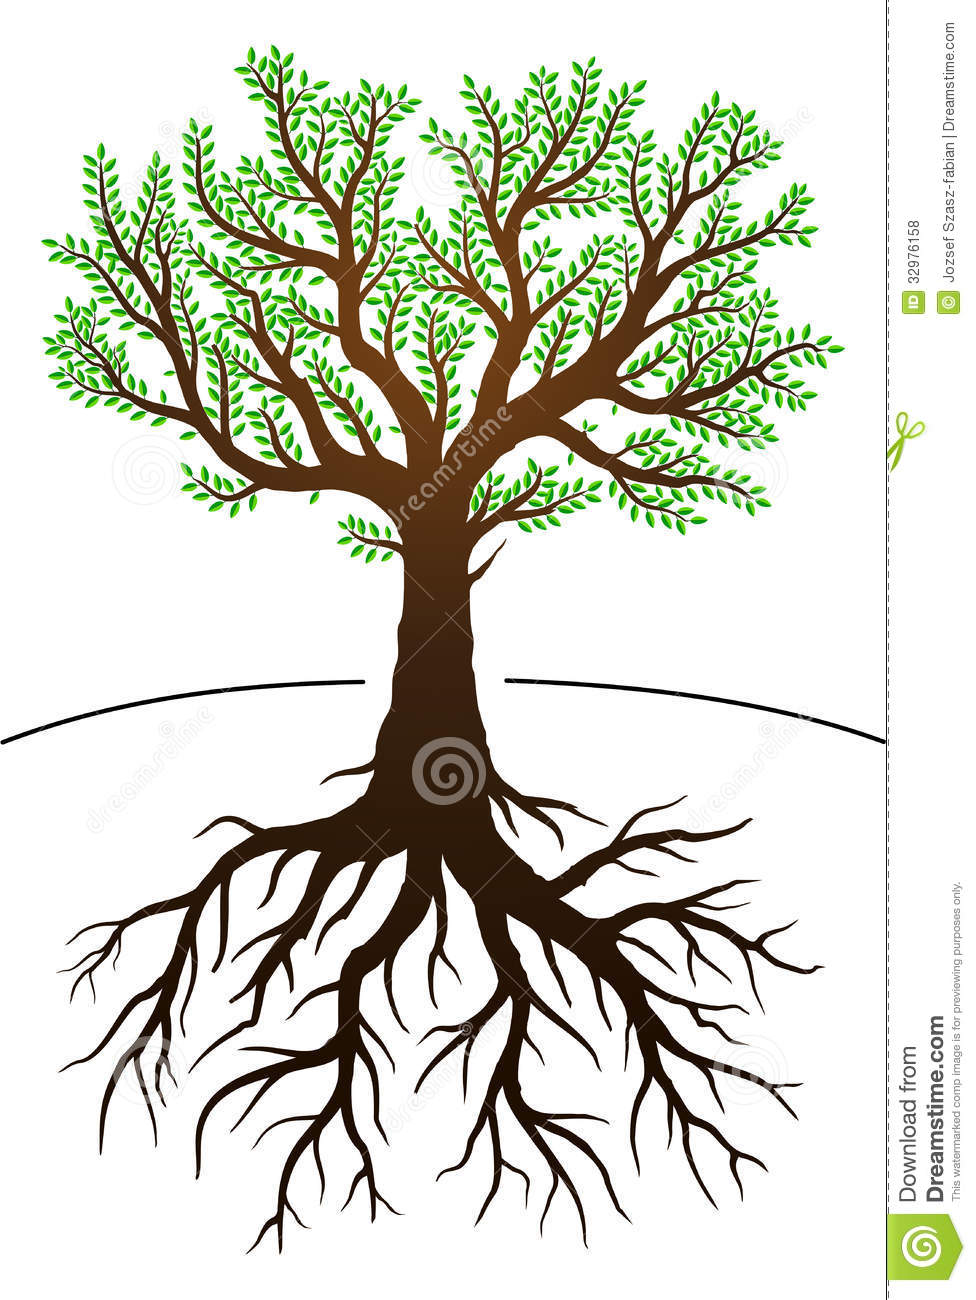 tree and its roots stock vector illustration of white 32976158. Black Bedroom Furniture Sets. Home Design Ideas